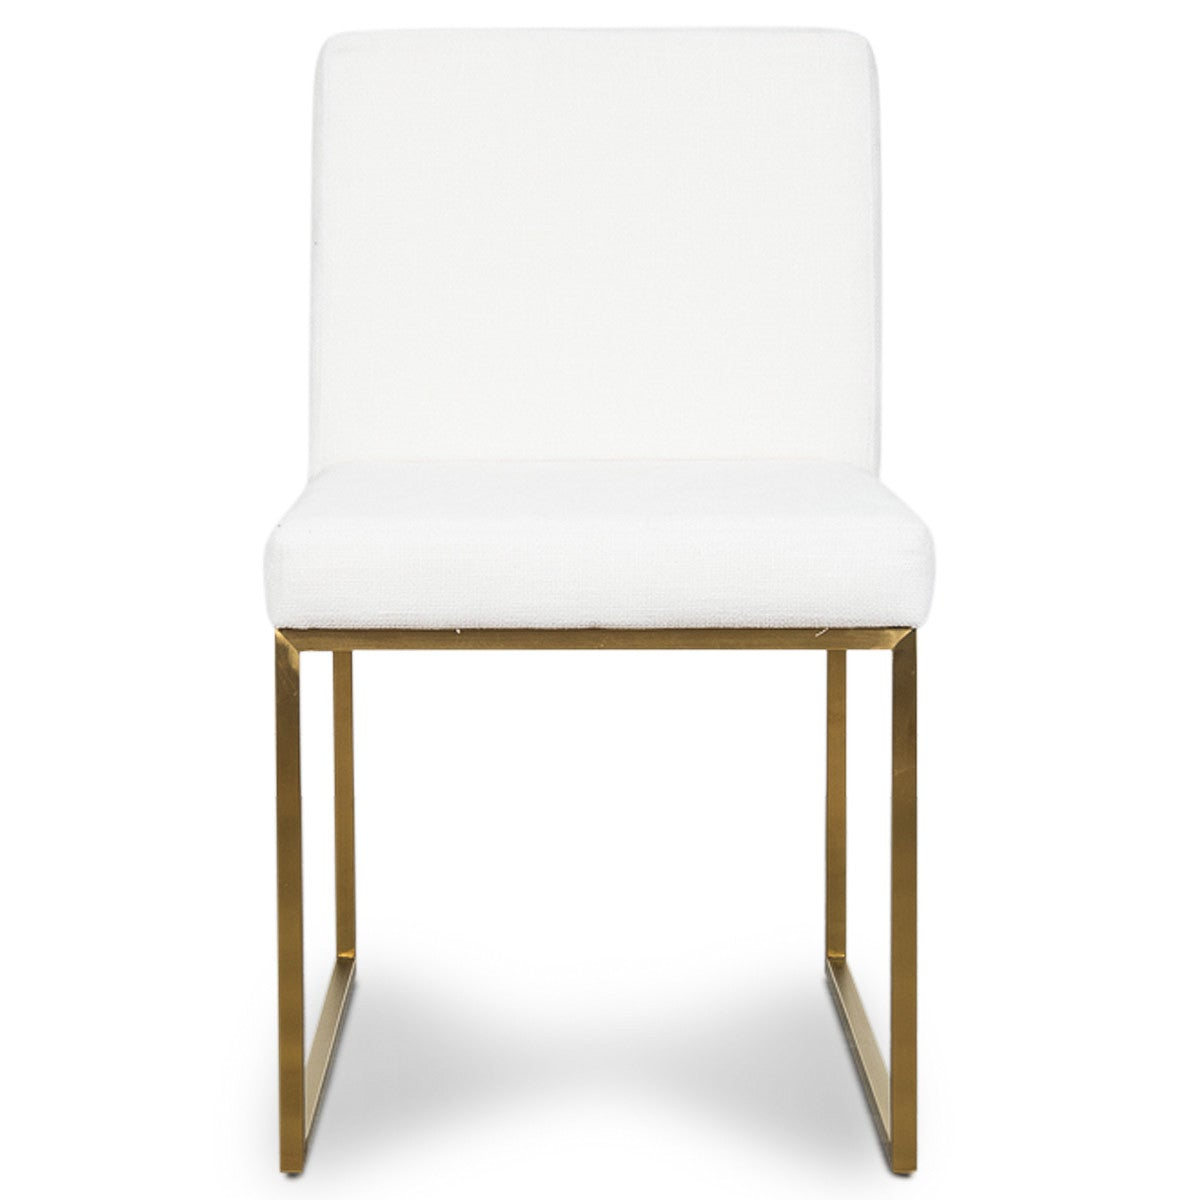 1147c08fa4c ... Goldfinger Dining Chair in White Linen - ModShop1.com ...